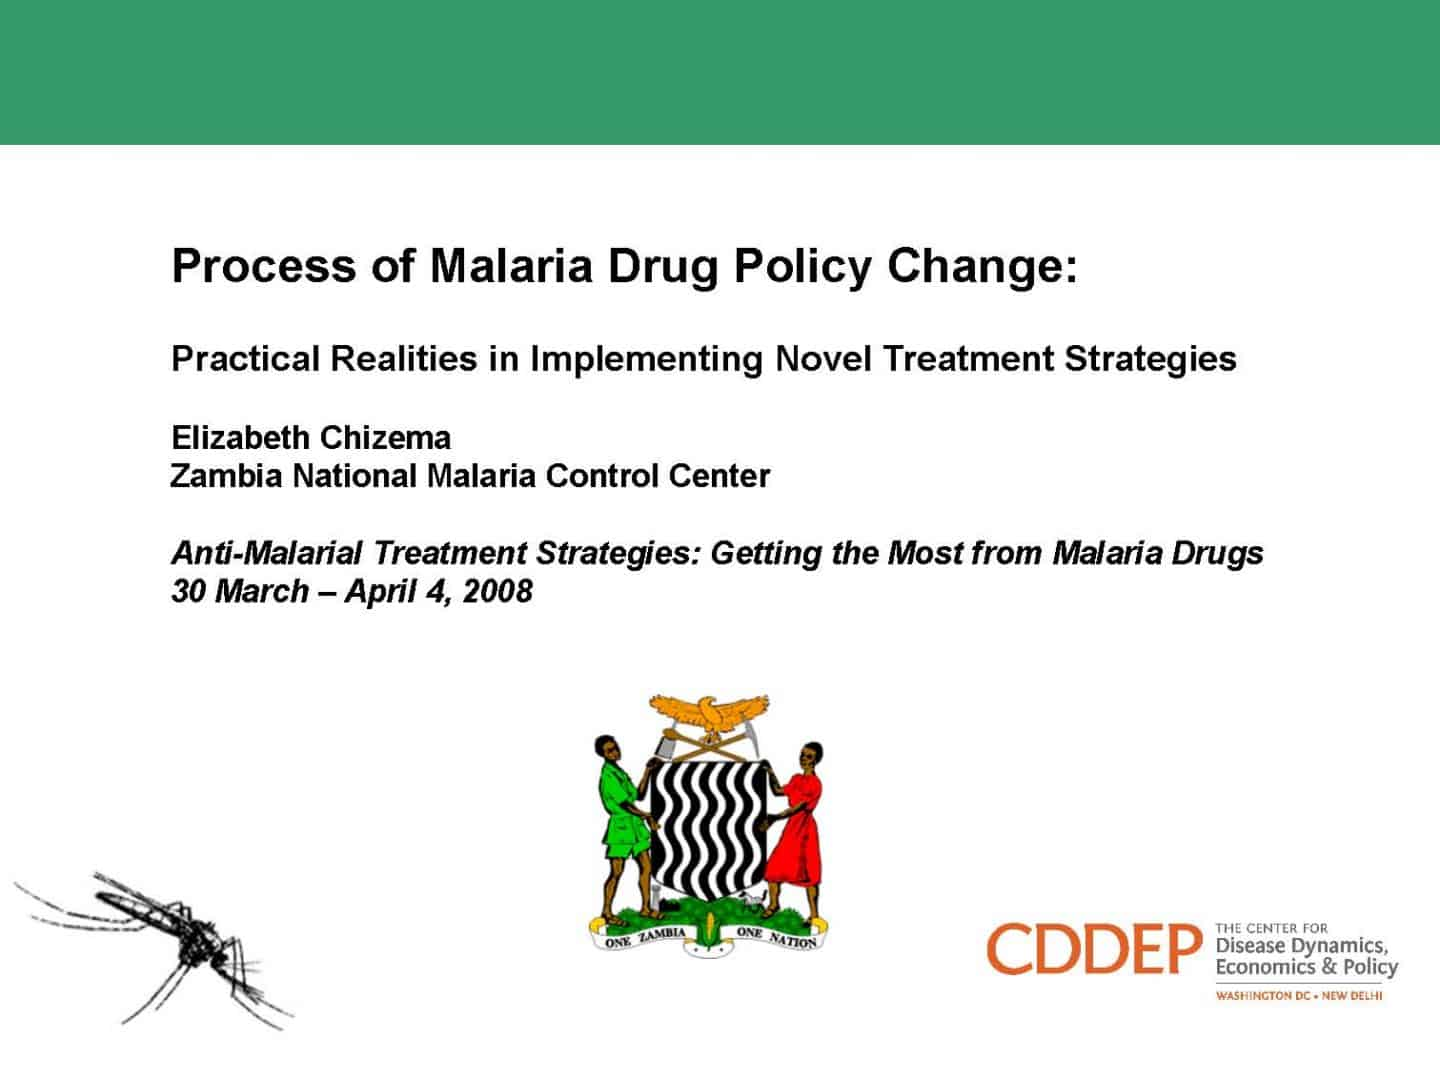 Process of Malaria Drug Policy Change: Practical Realities in Implementing Novel Treatment Strategies